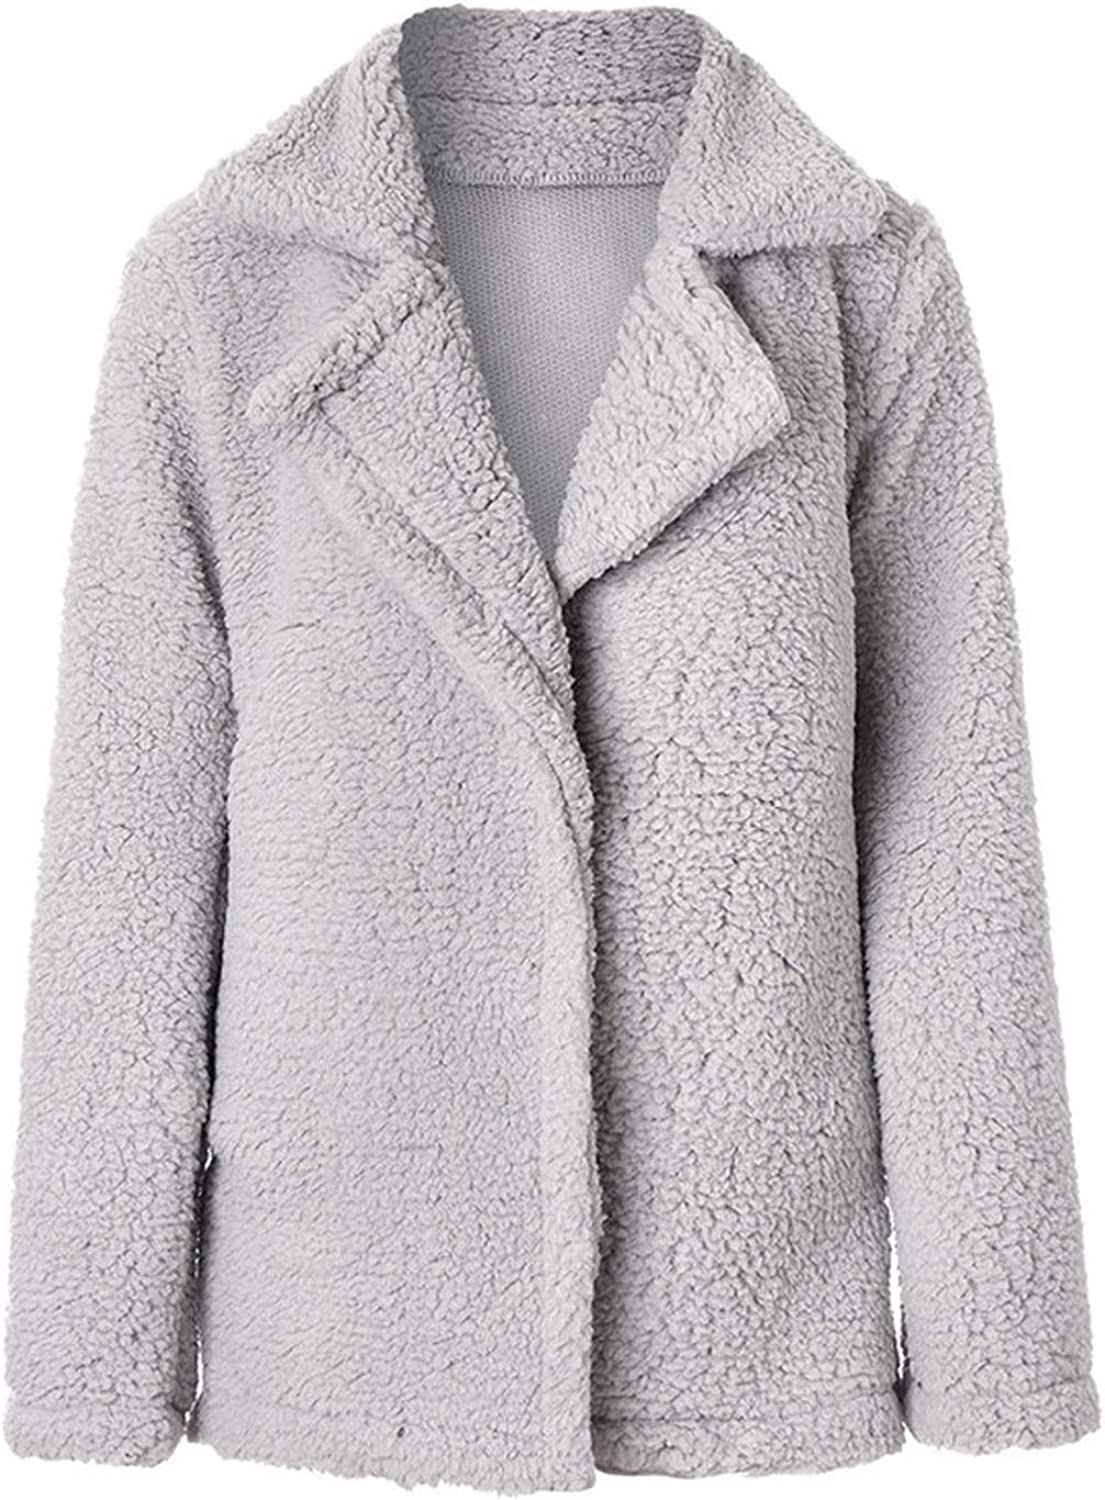 Women Cashmere Coat Thicken Warm Long-Sleeved Jacket with Pocket Cardigan Soft Winter Elegant